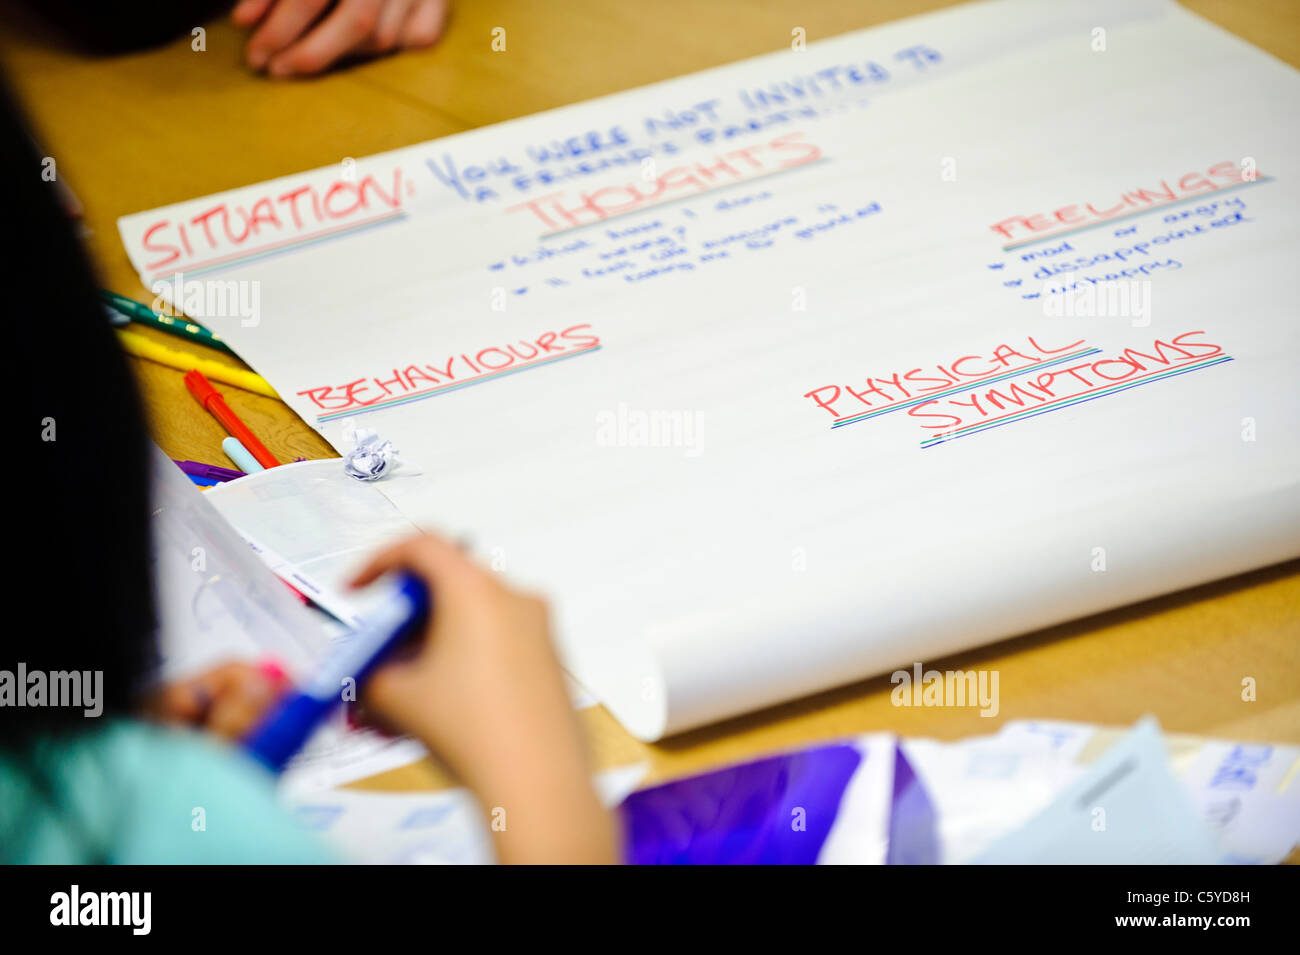 large sheet of flip chart paper showing emotive words like thoughts and feelings in a classroom setting - Stock Image